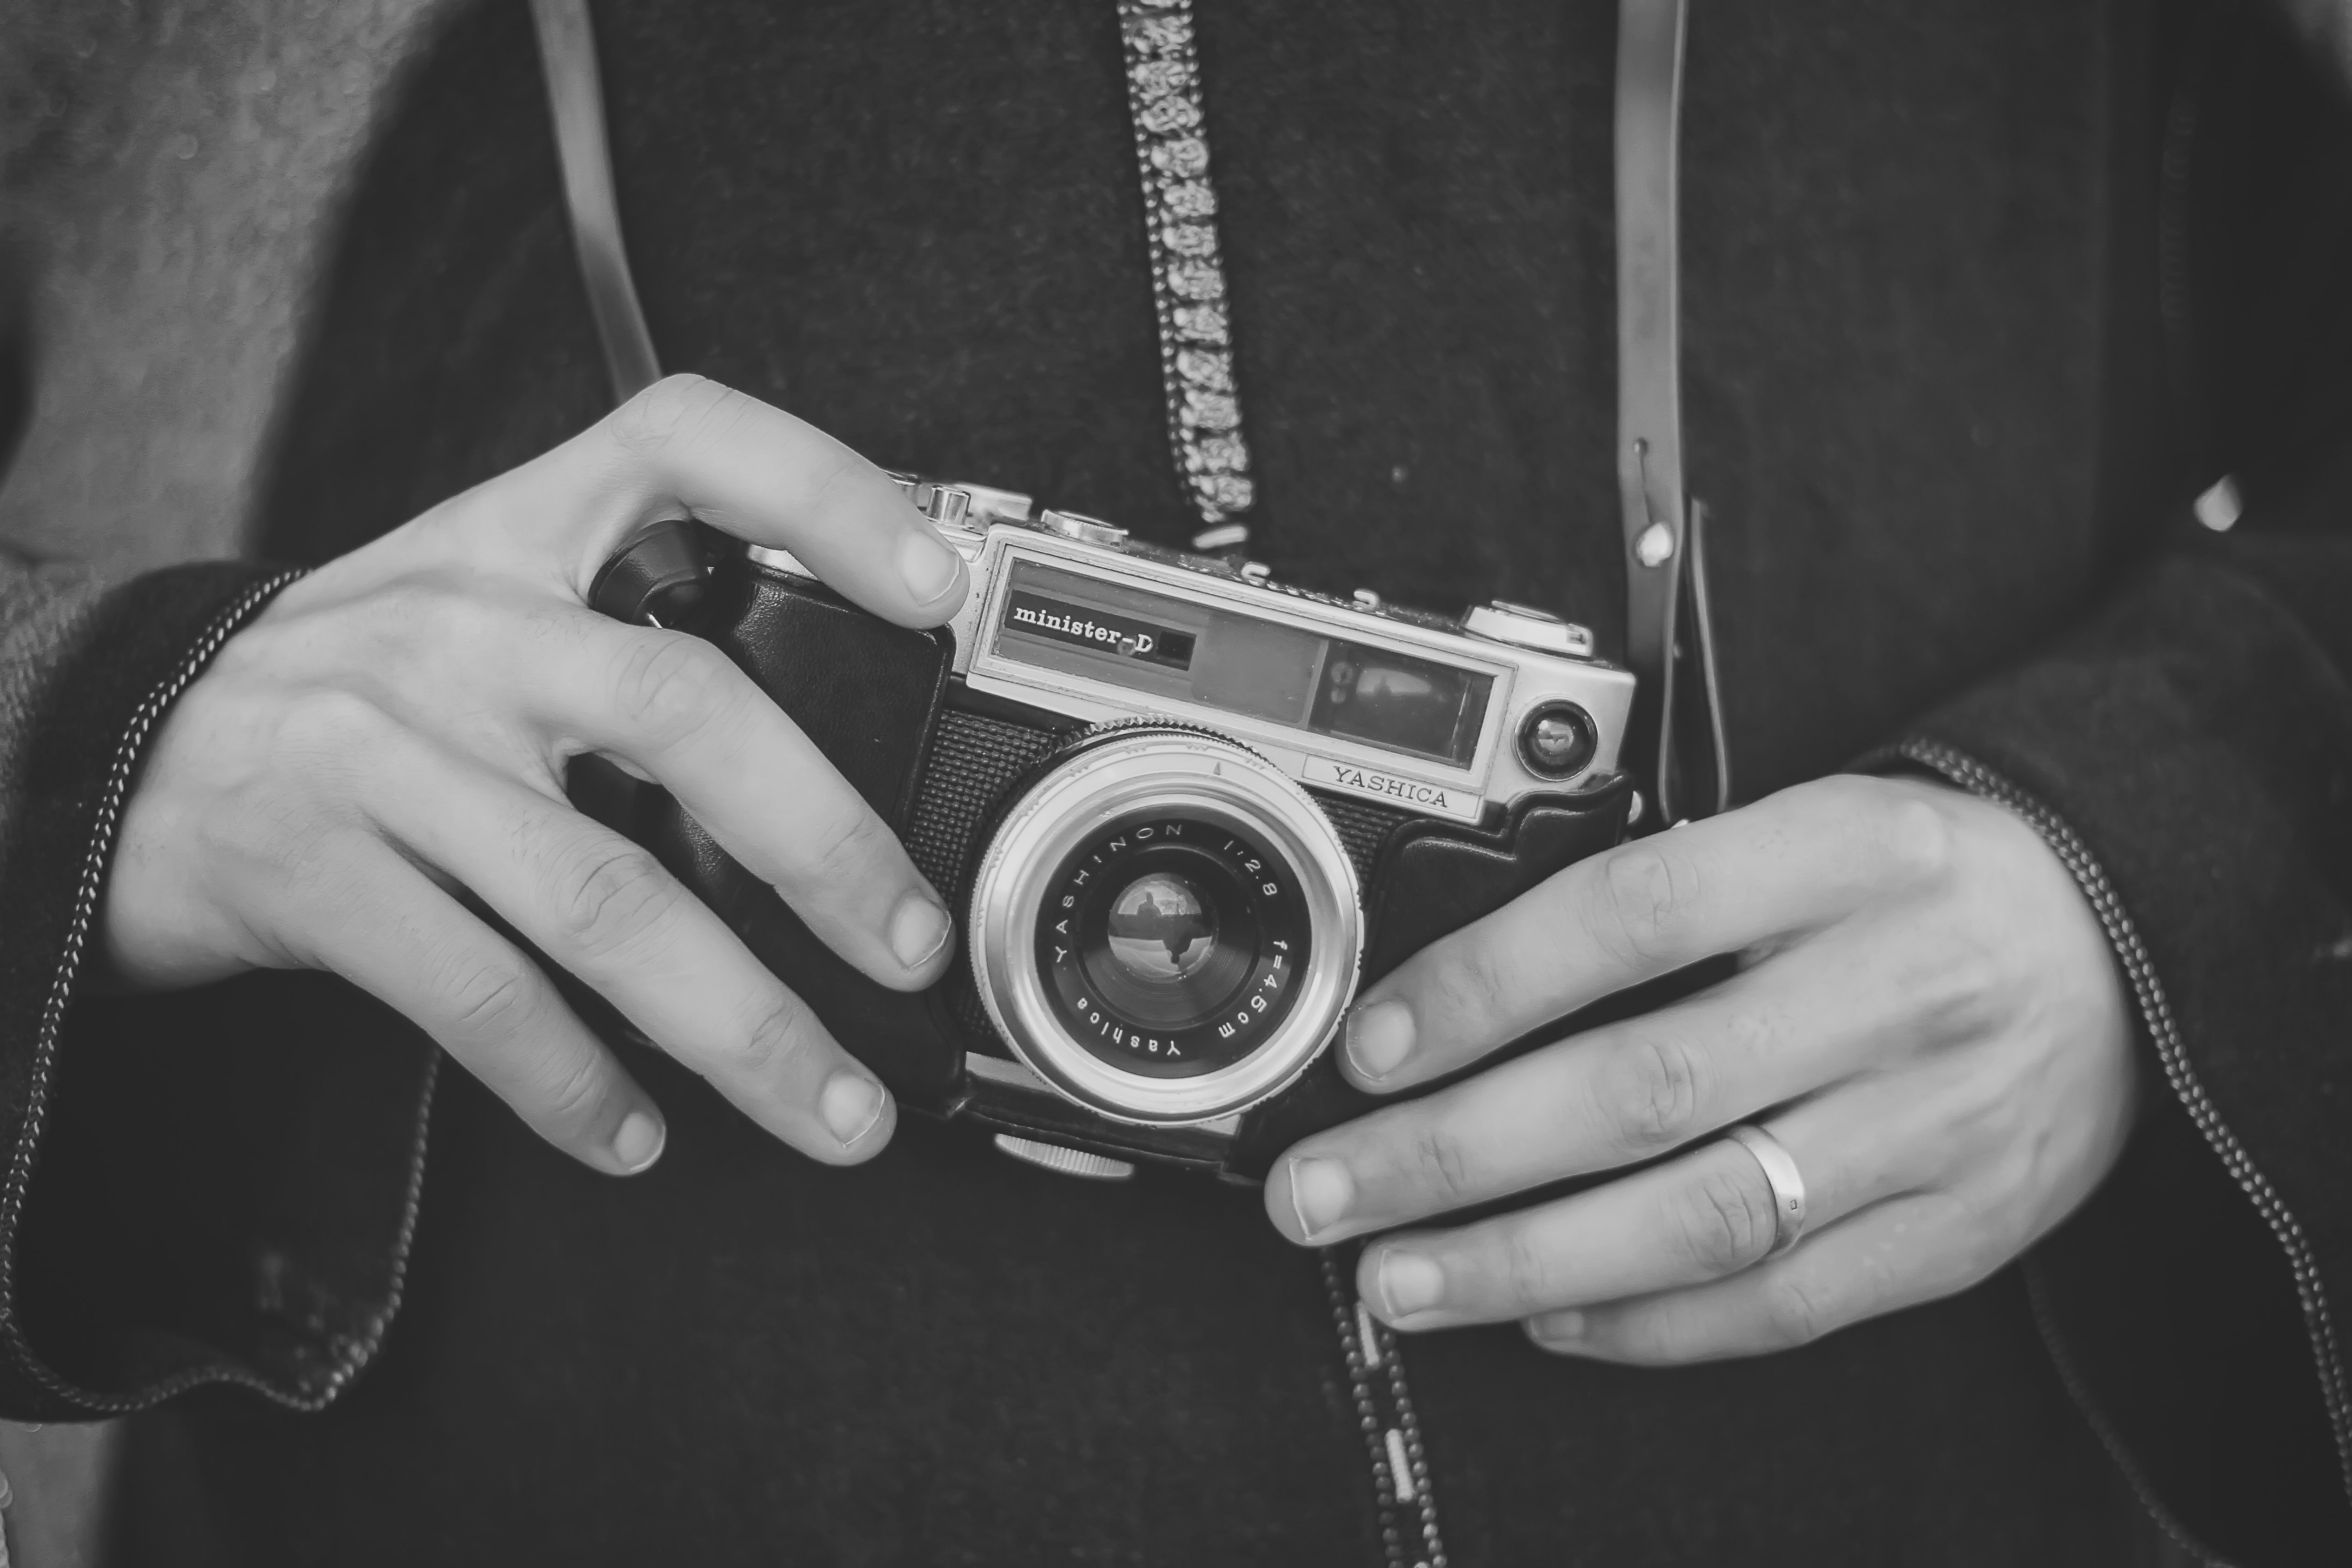 grayscale photo of person holding SLR camera